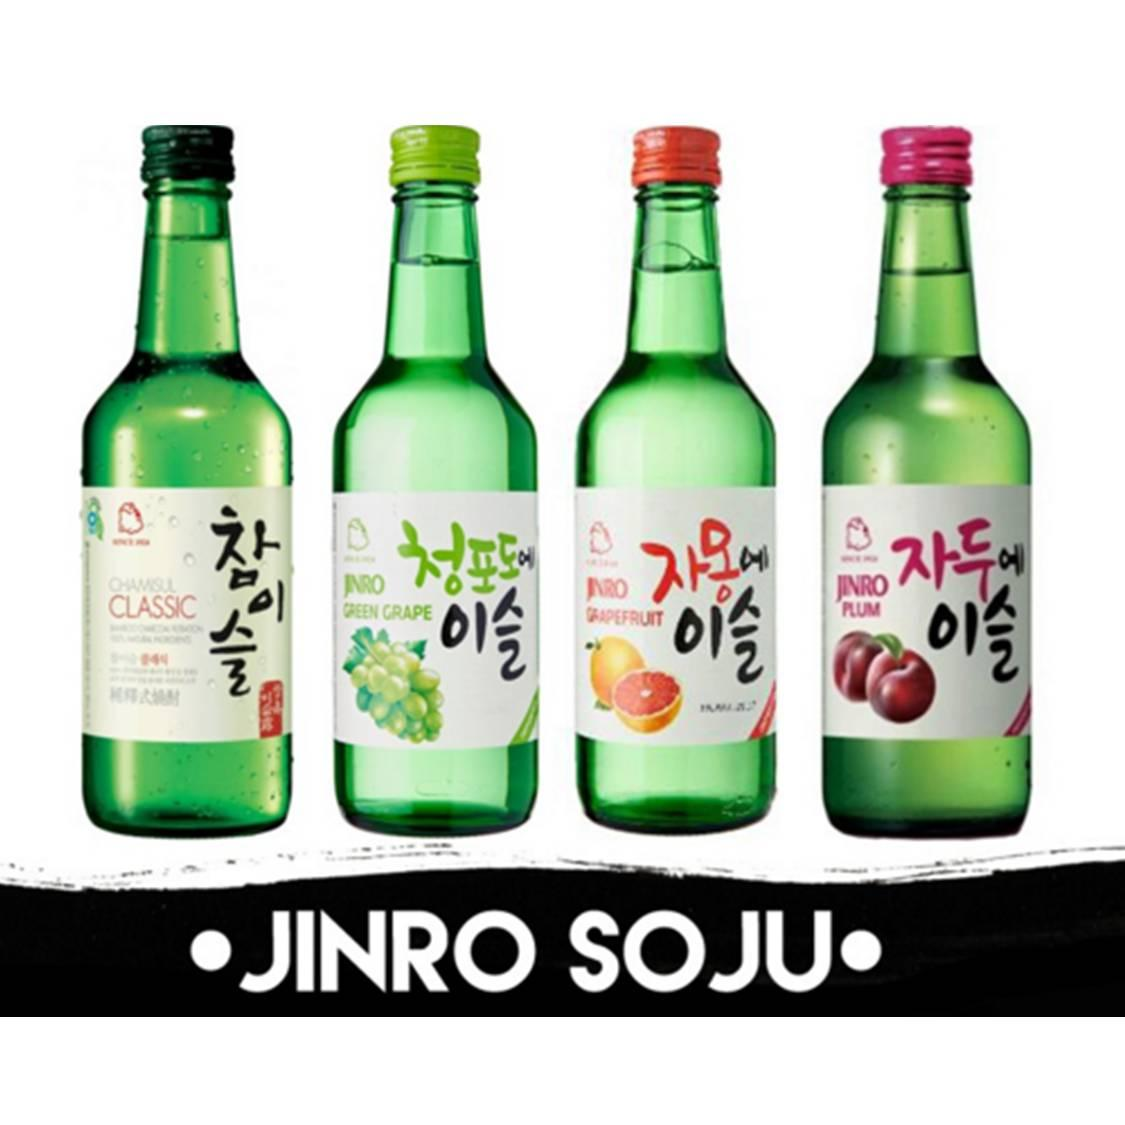 Jinro Soju - Choose Any 4 Bottles Combo - Classic/grape/grapefruit/plum By Qqmart.